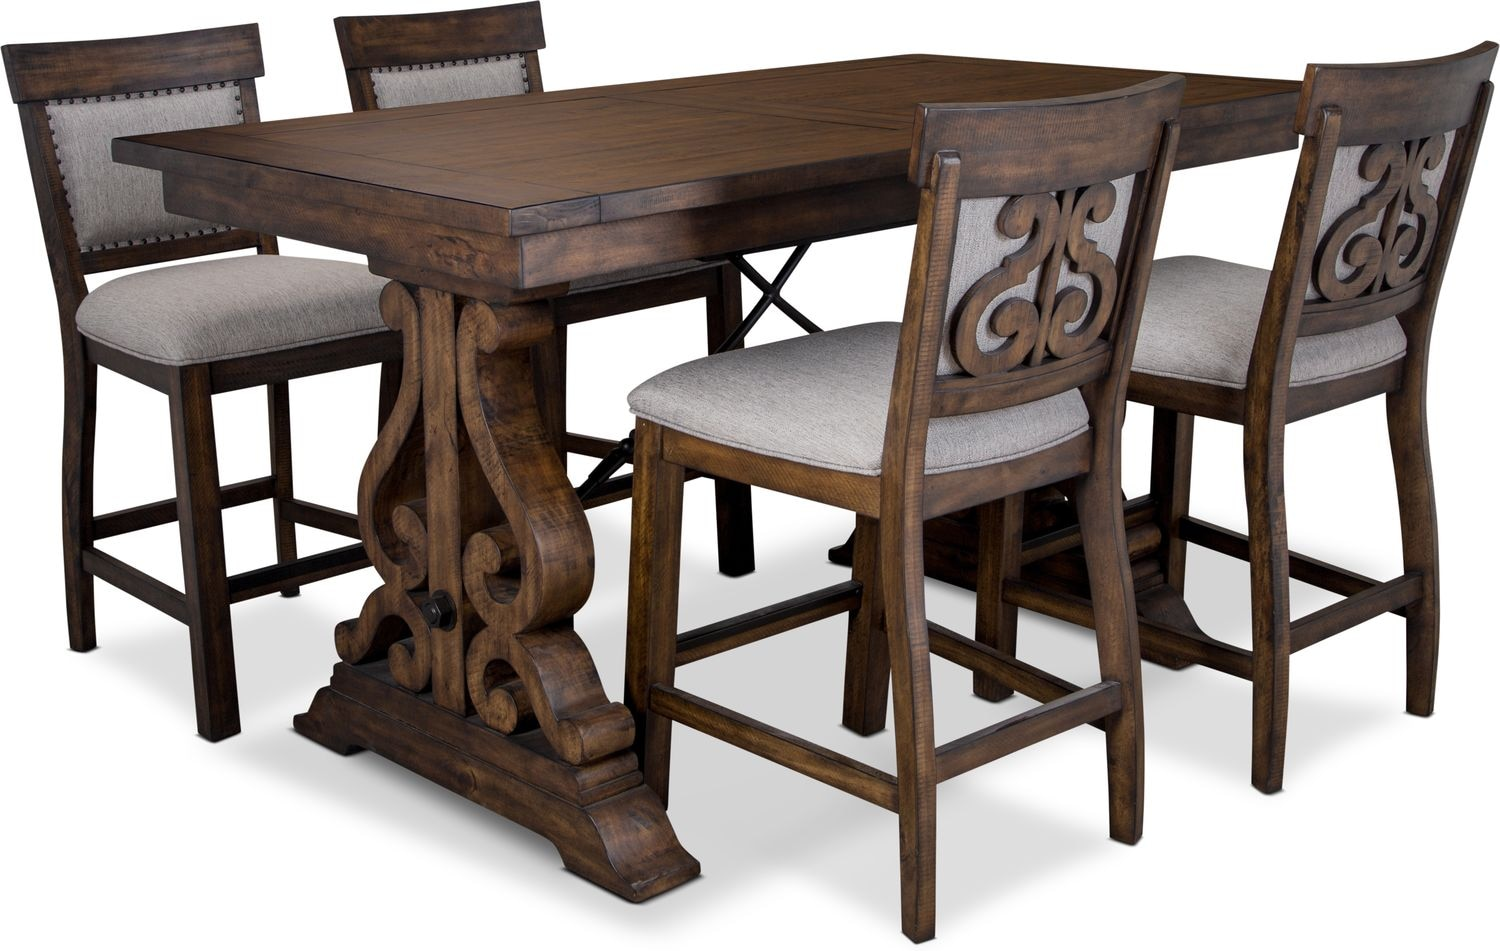 Dining Room Furniture - Charthouse Counter-Height Dining Table and 4 Upholstered Stools